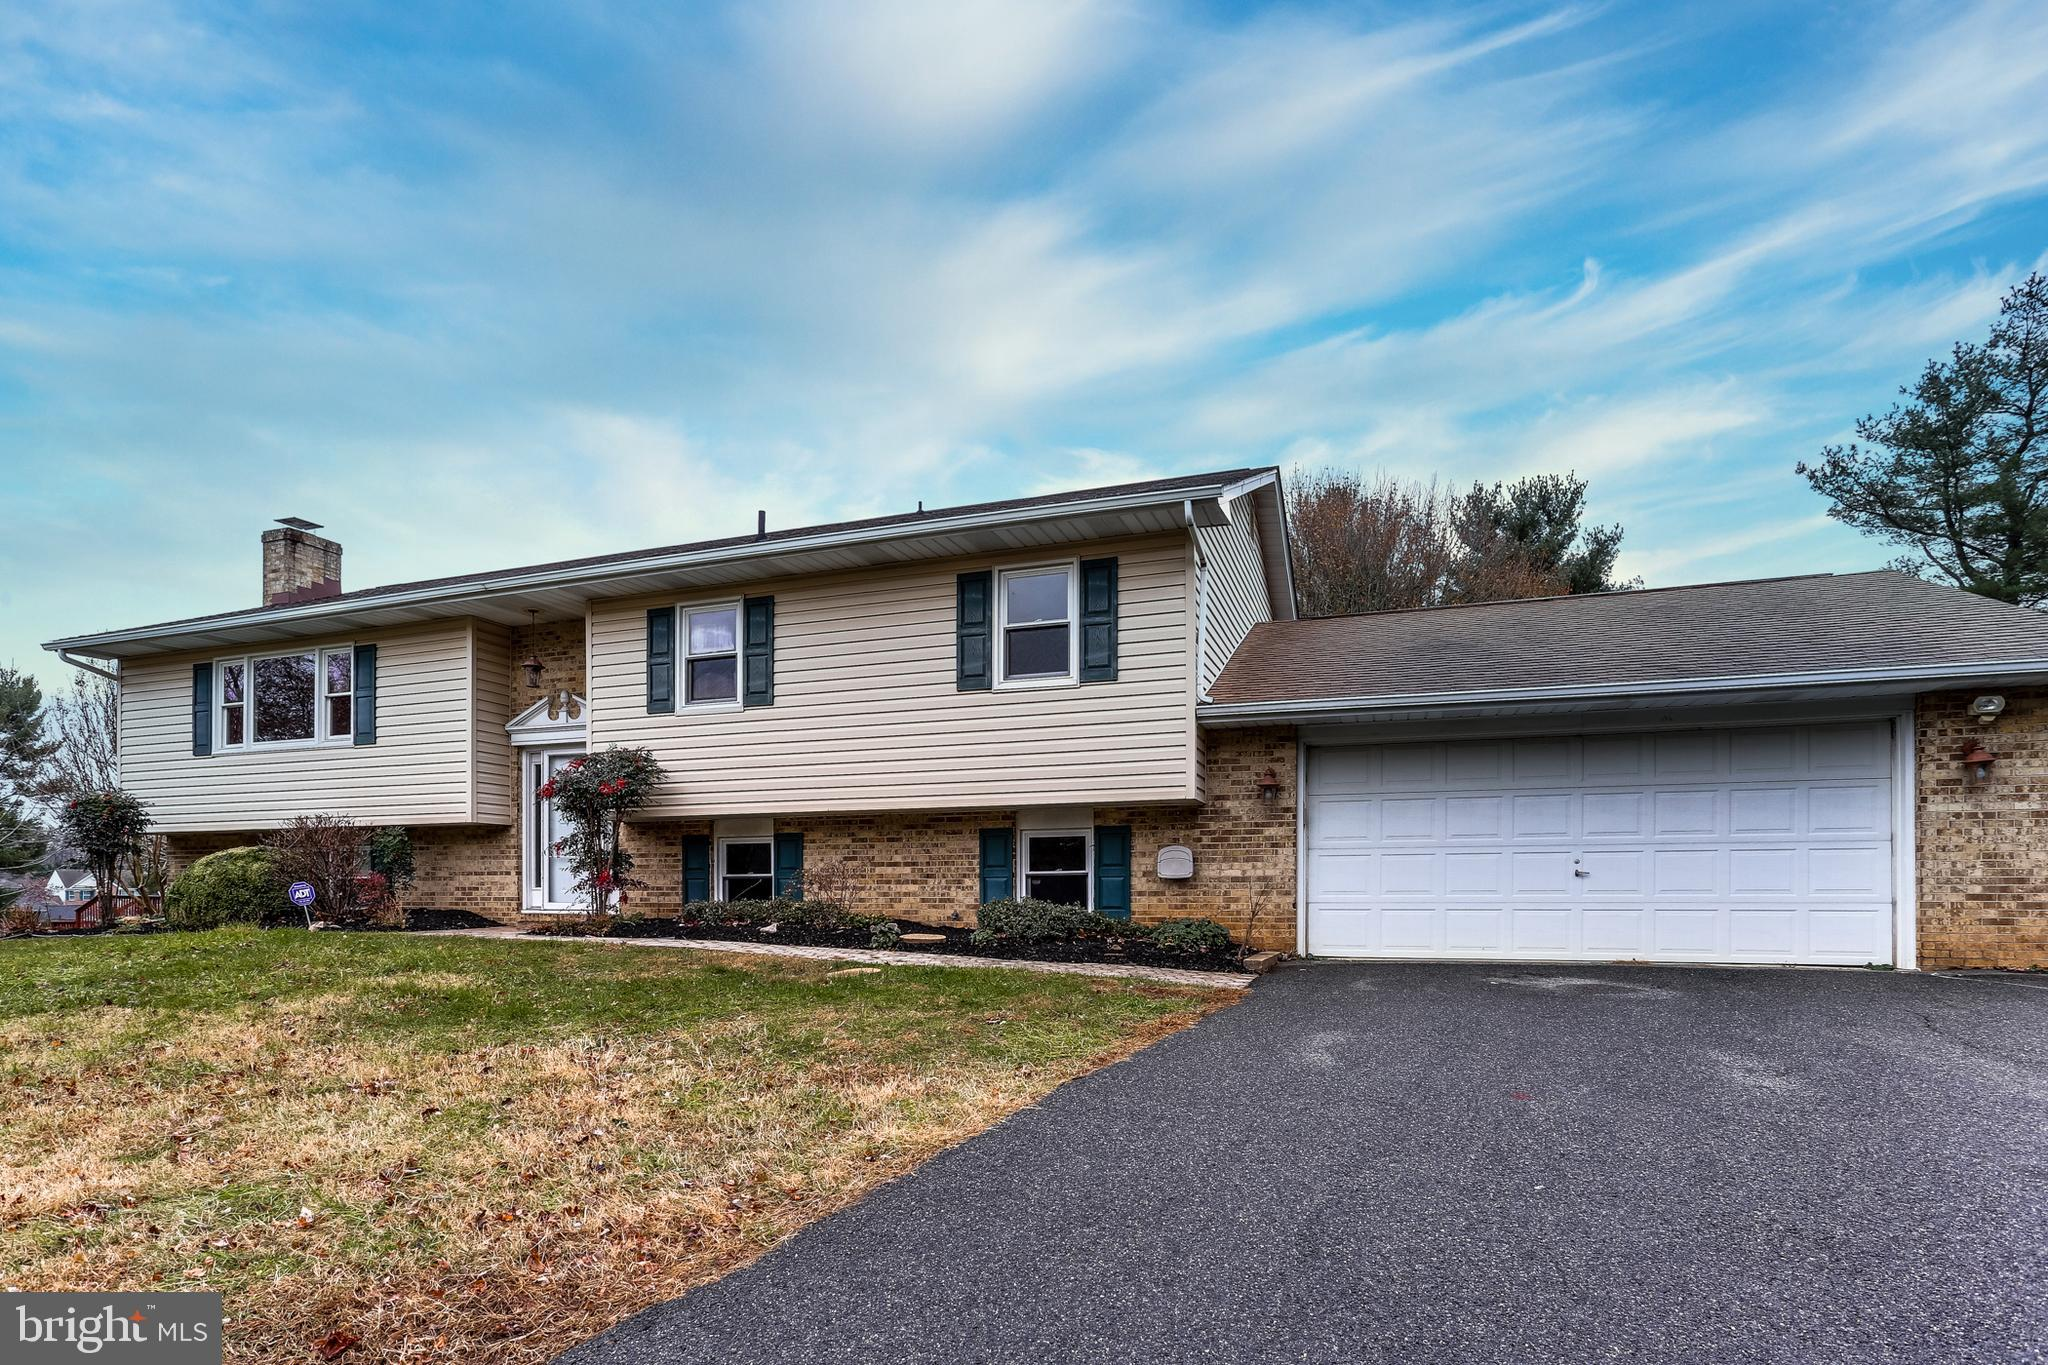 FALLSTON! FALLSTON! FALLSTON! FRESHLY PAINTED AND READY FOR A NEW OWNER. THIS HOME SITS ON OVER 3/4